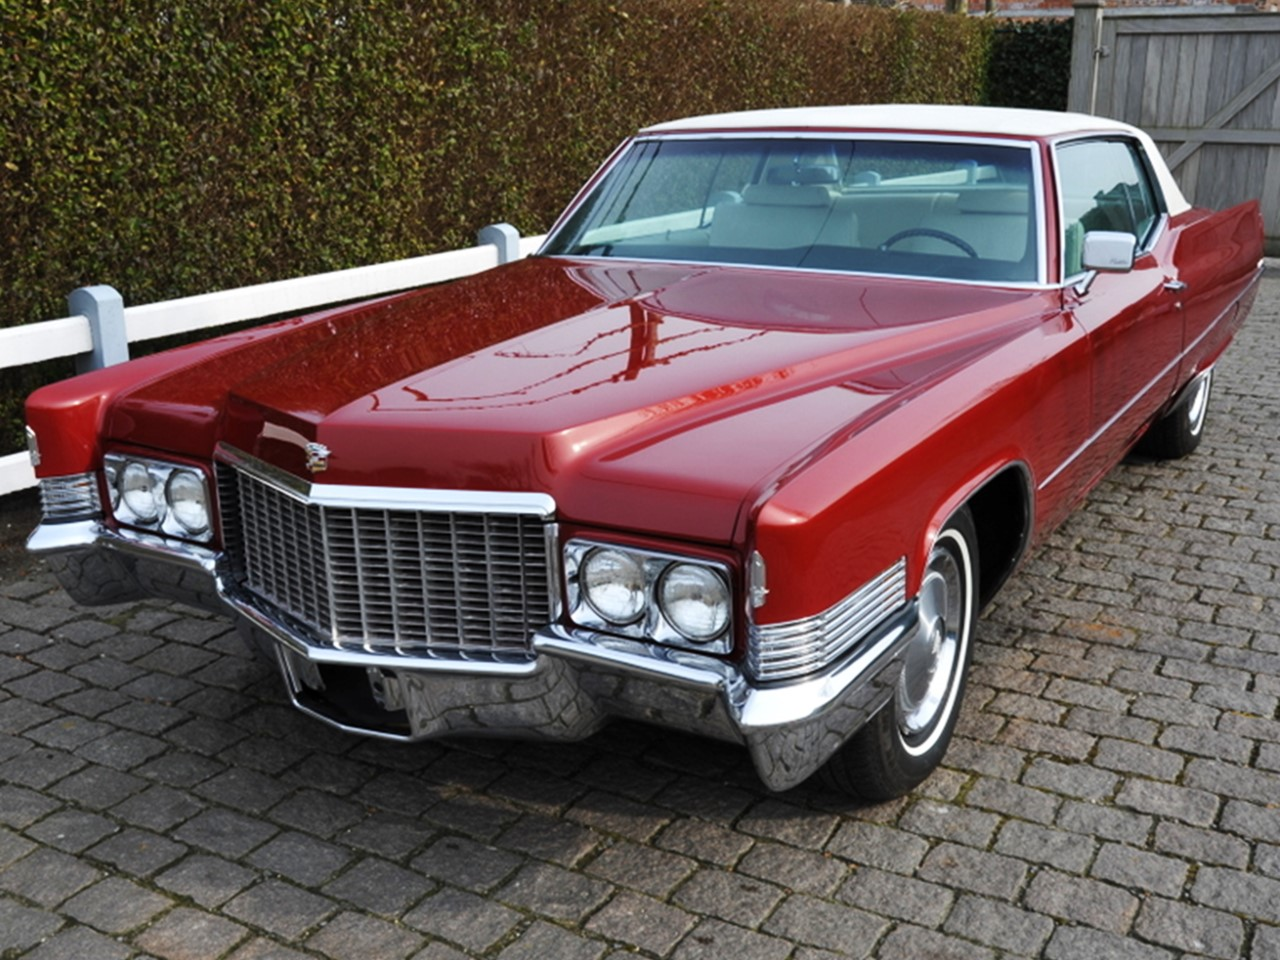 It's Yesterday Once More: The Incomparable 1968 Cadillac Fleetwood